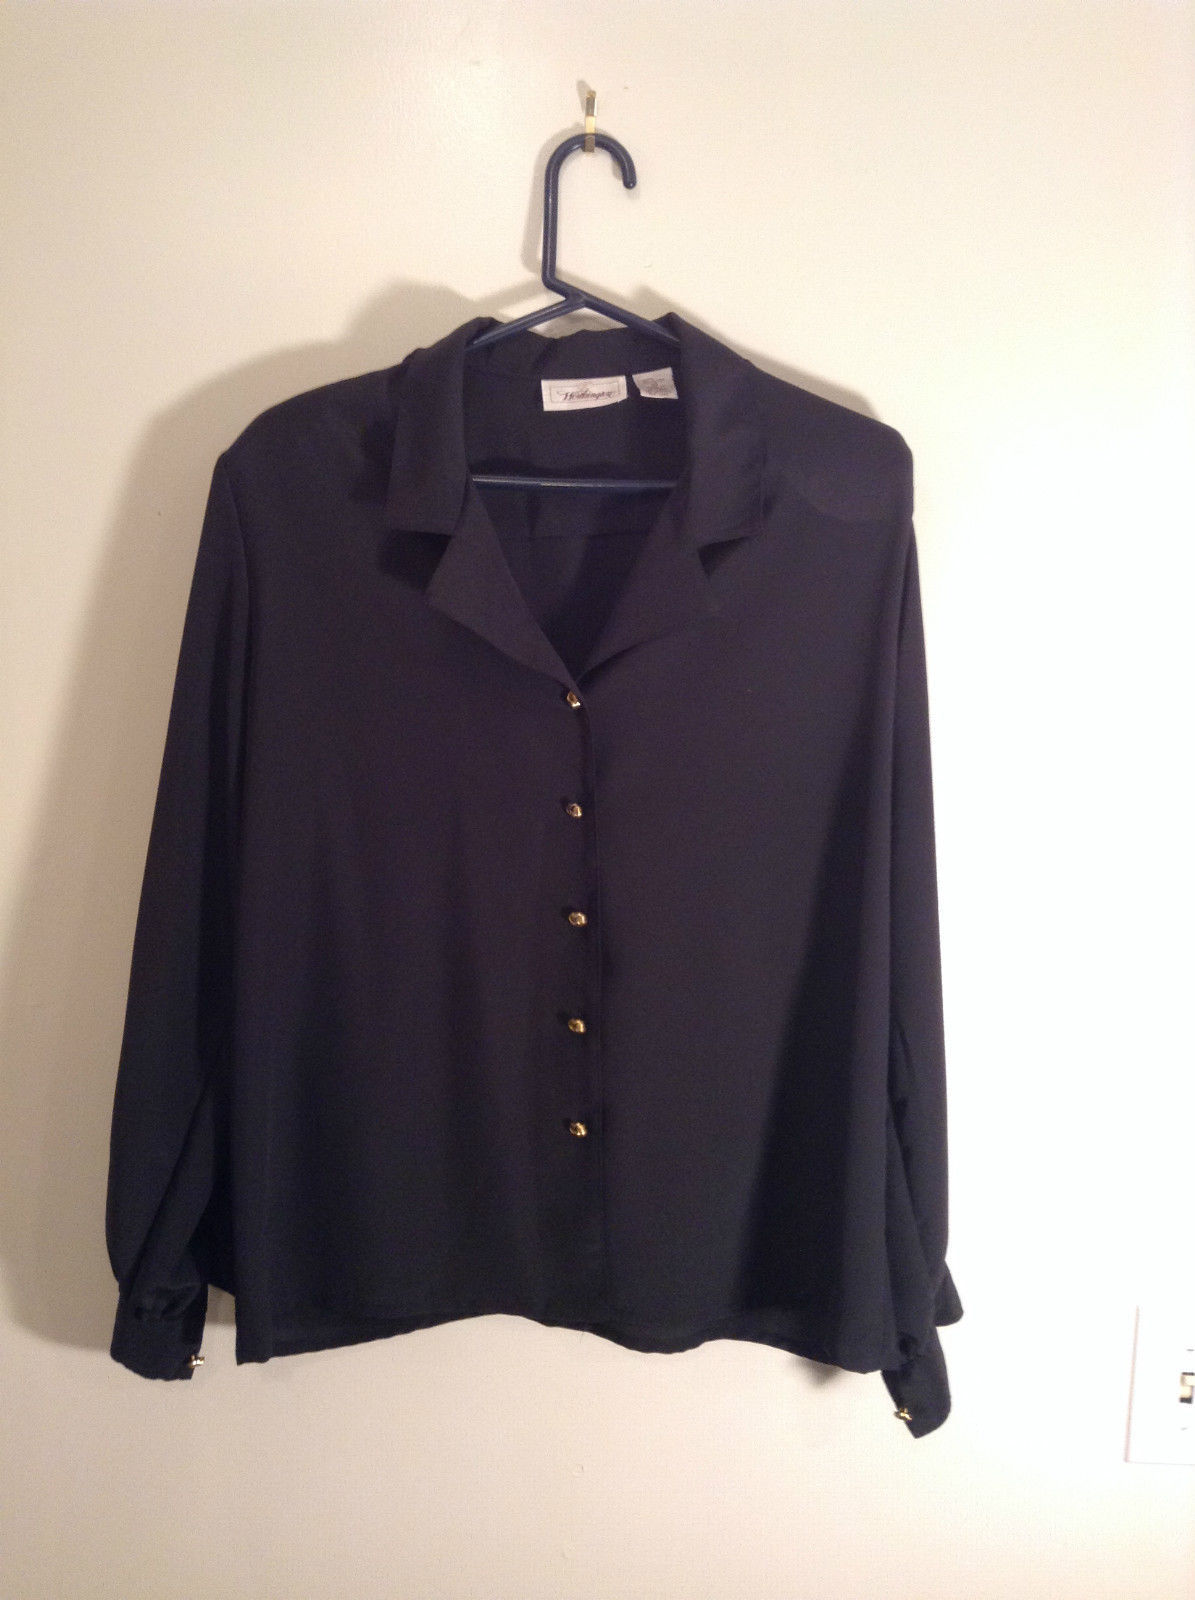 Black Long Sleeve Button Up Blouse Gold Toned Buttons Size 15 Worthington